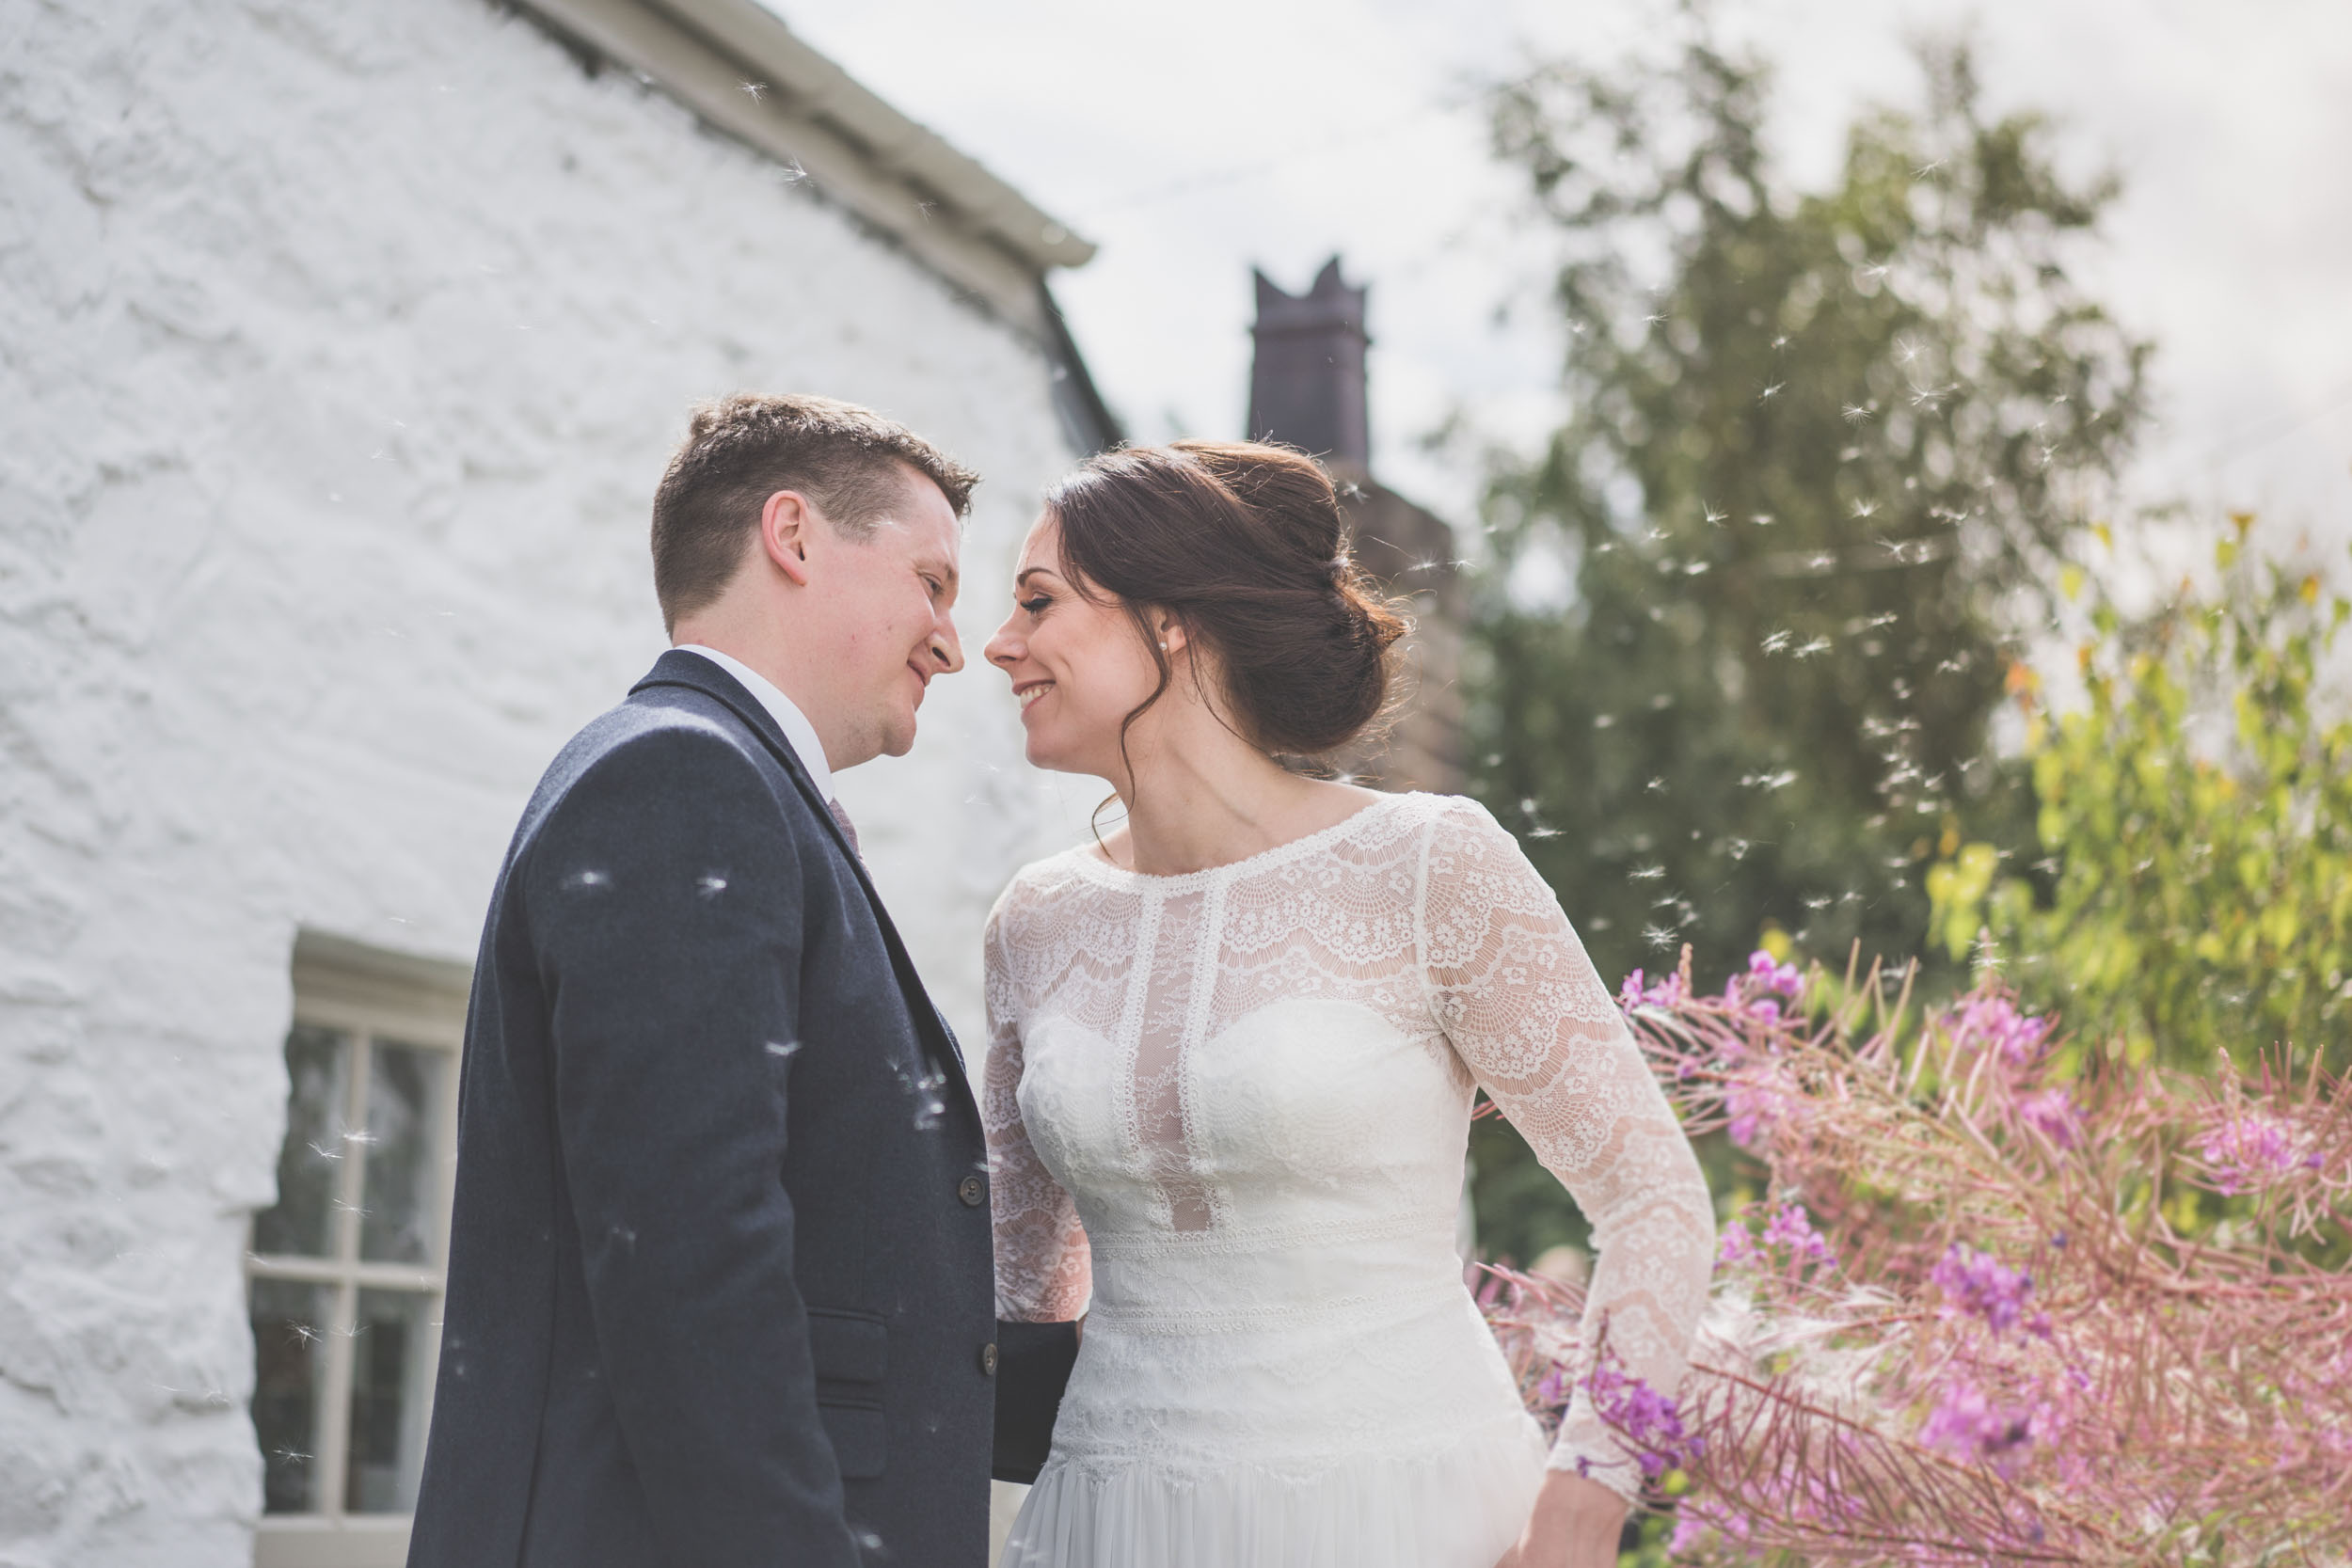 A perfect little intimate moment Post wedding ceremony in North Wales